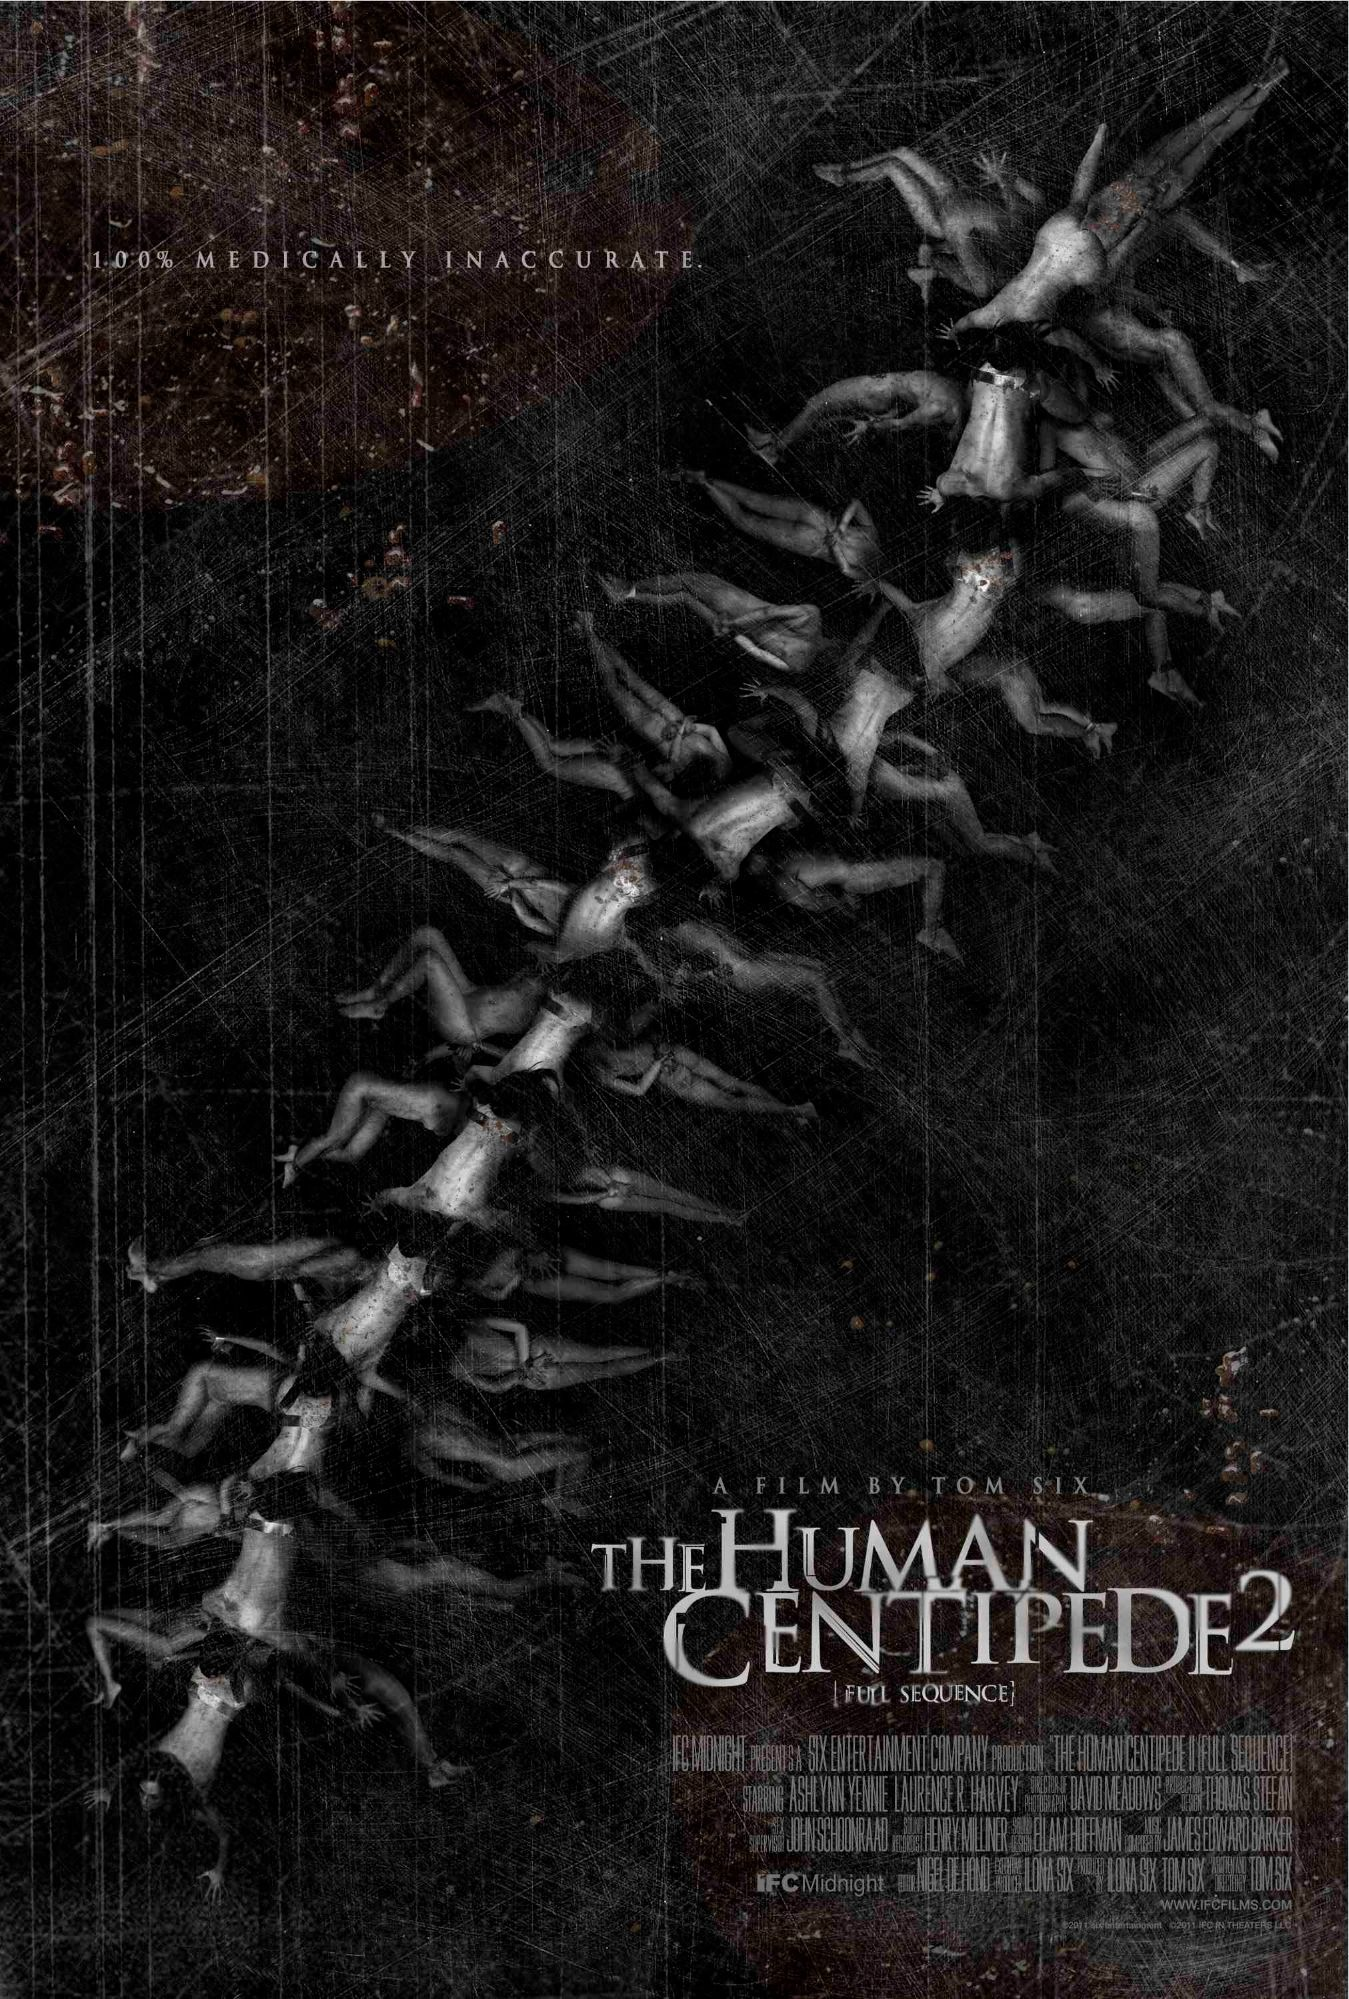 the-human-centipede-2-poster-1617728049.jpg